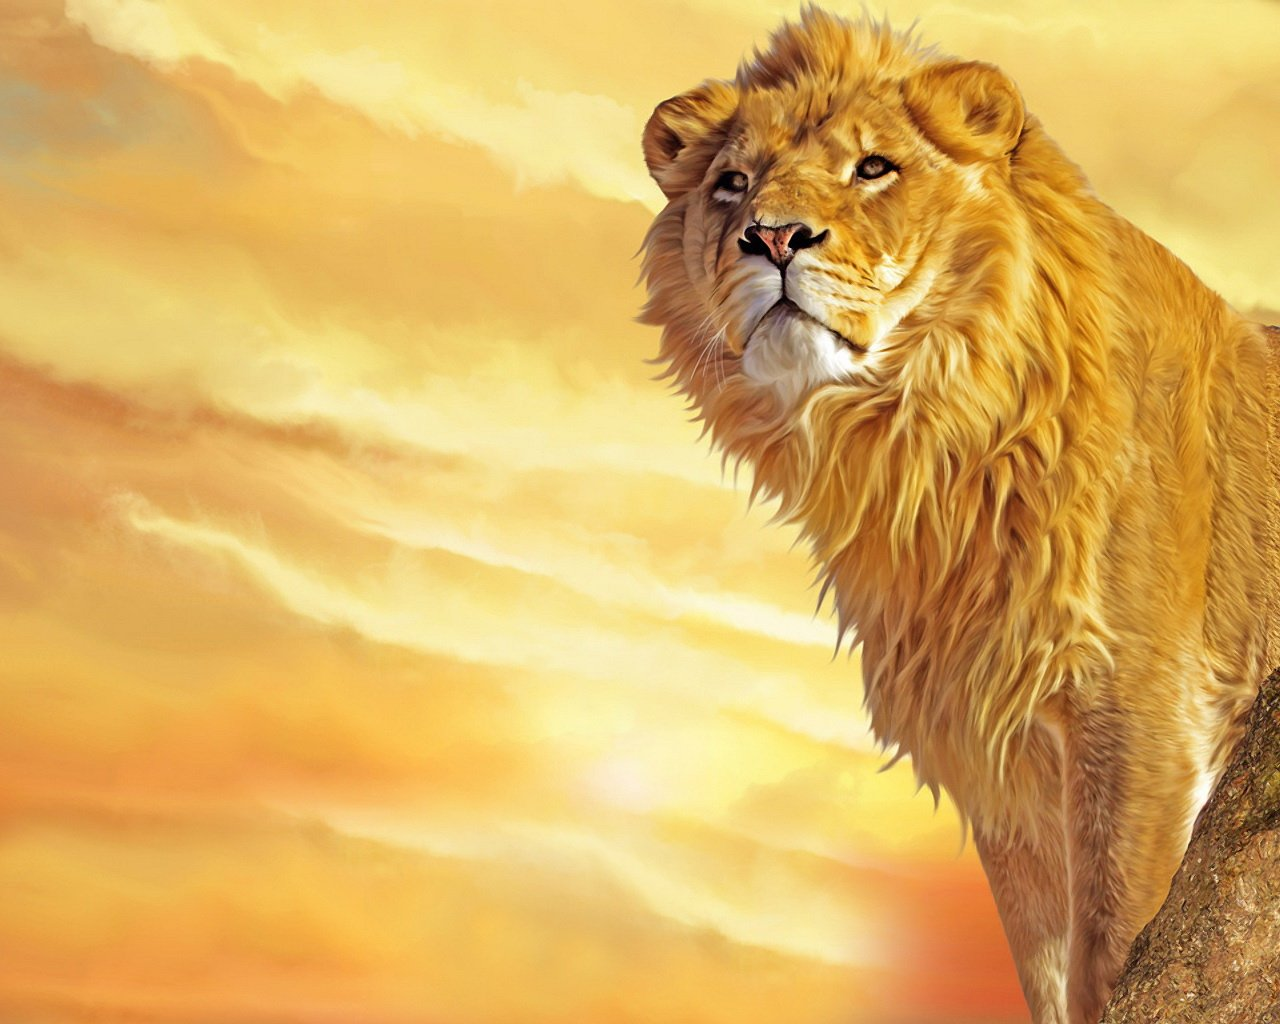 Lion Wallpapers   Desktop Lion Wallpapers collection for your 1280x1024